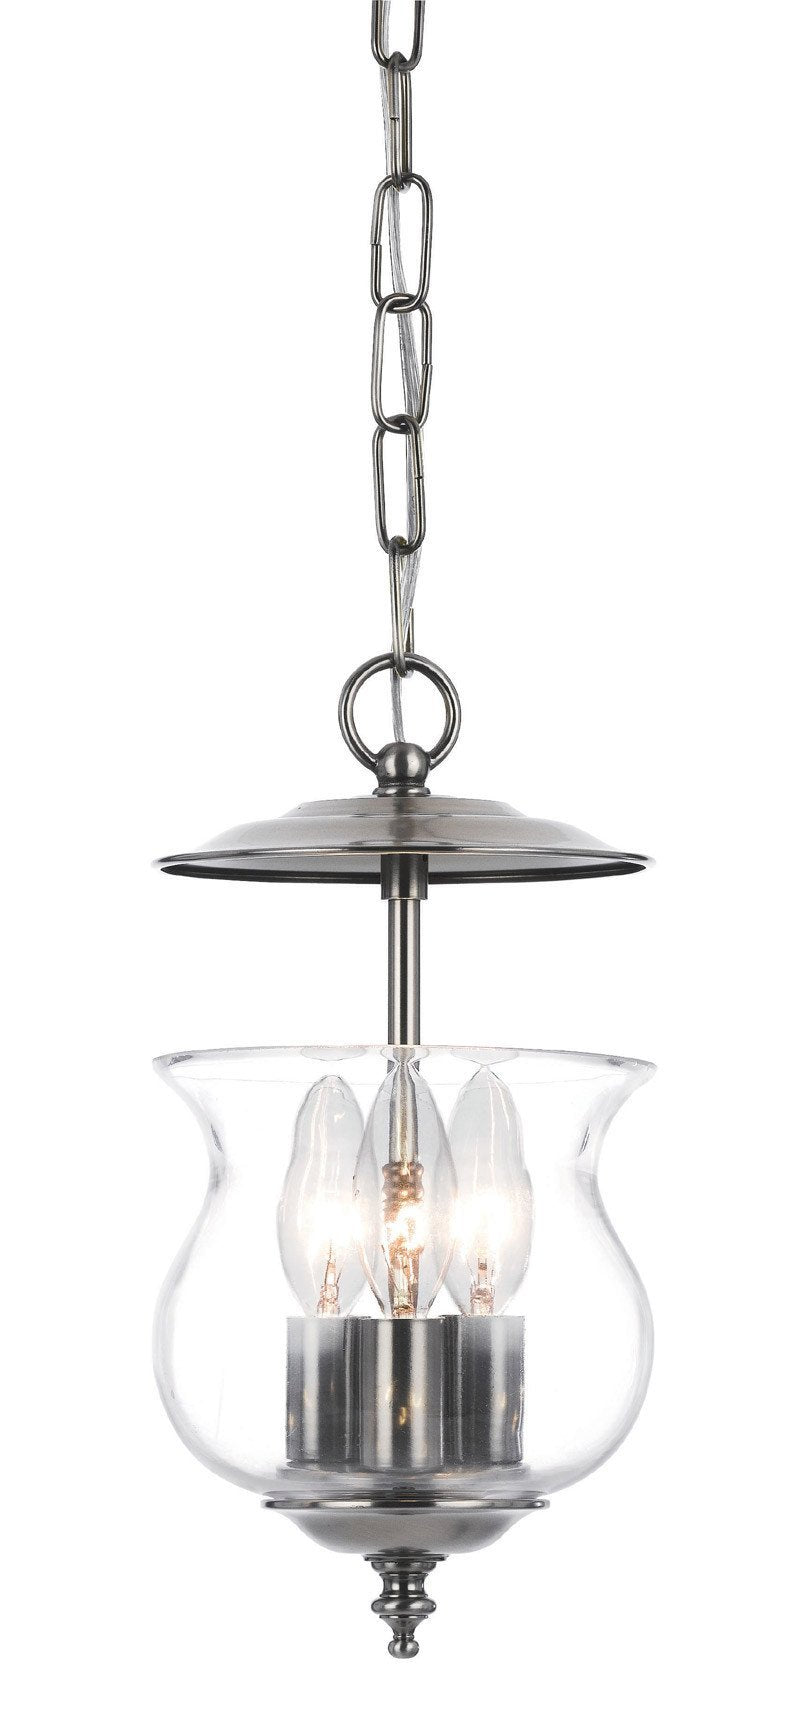 Crystorama 5717-PW 3-Lights Traditional Bell Jar Finished In Pewter. - Pewter